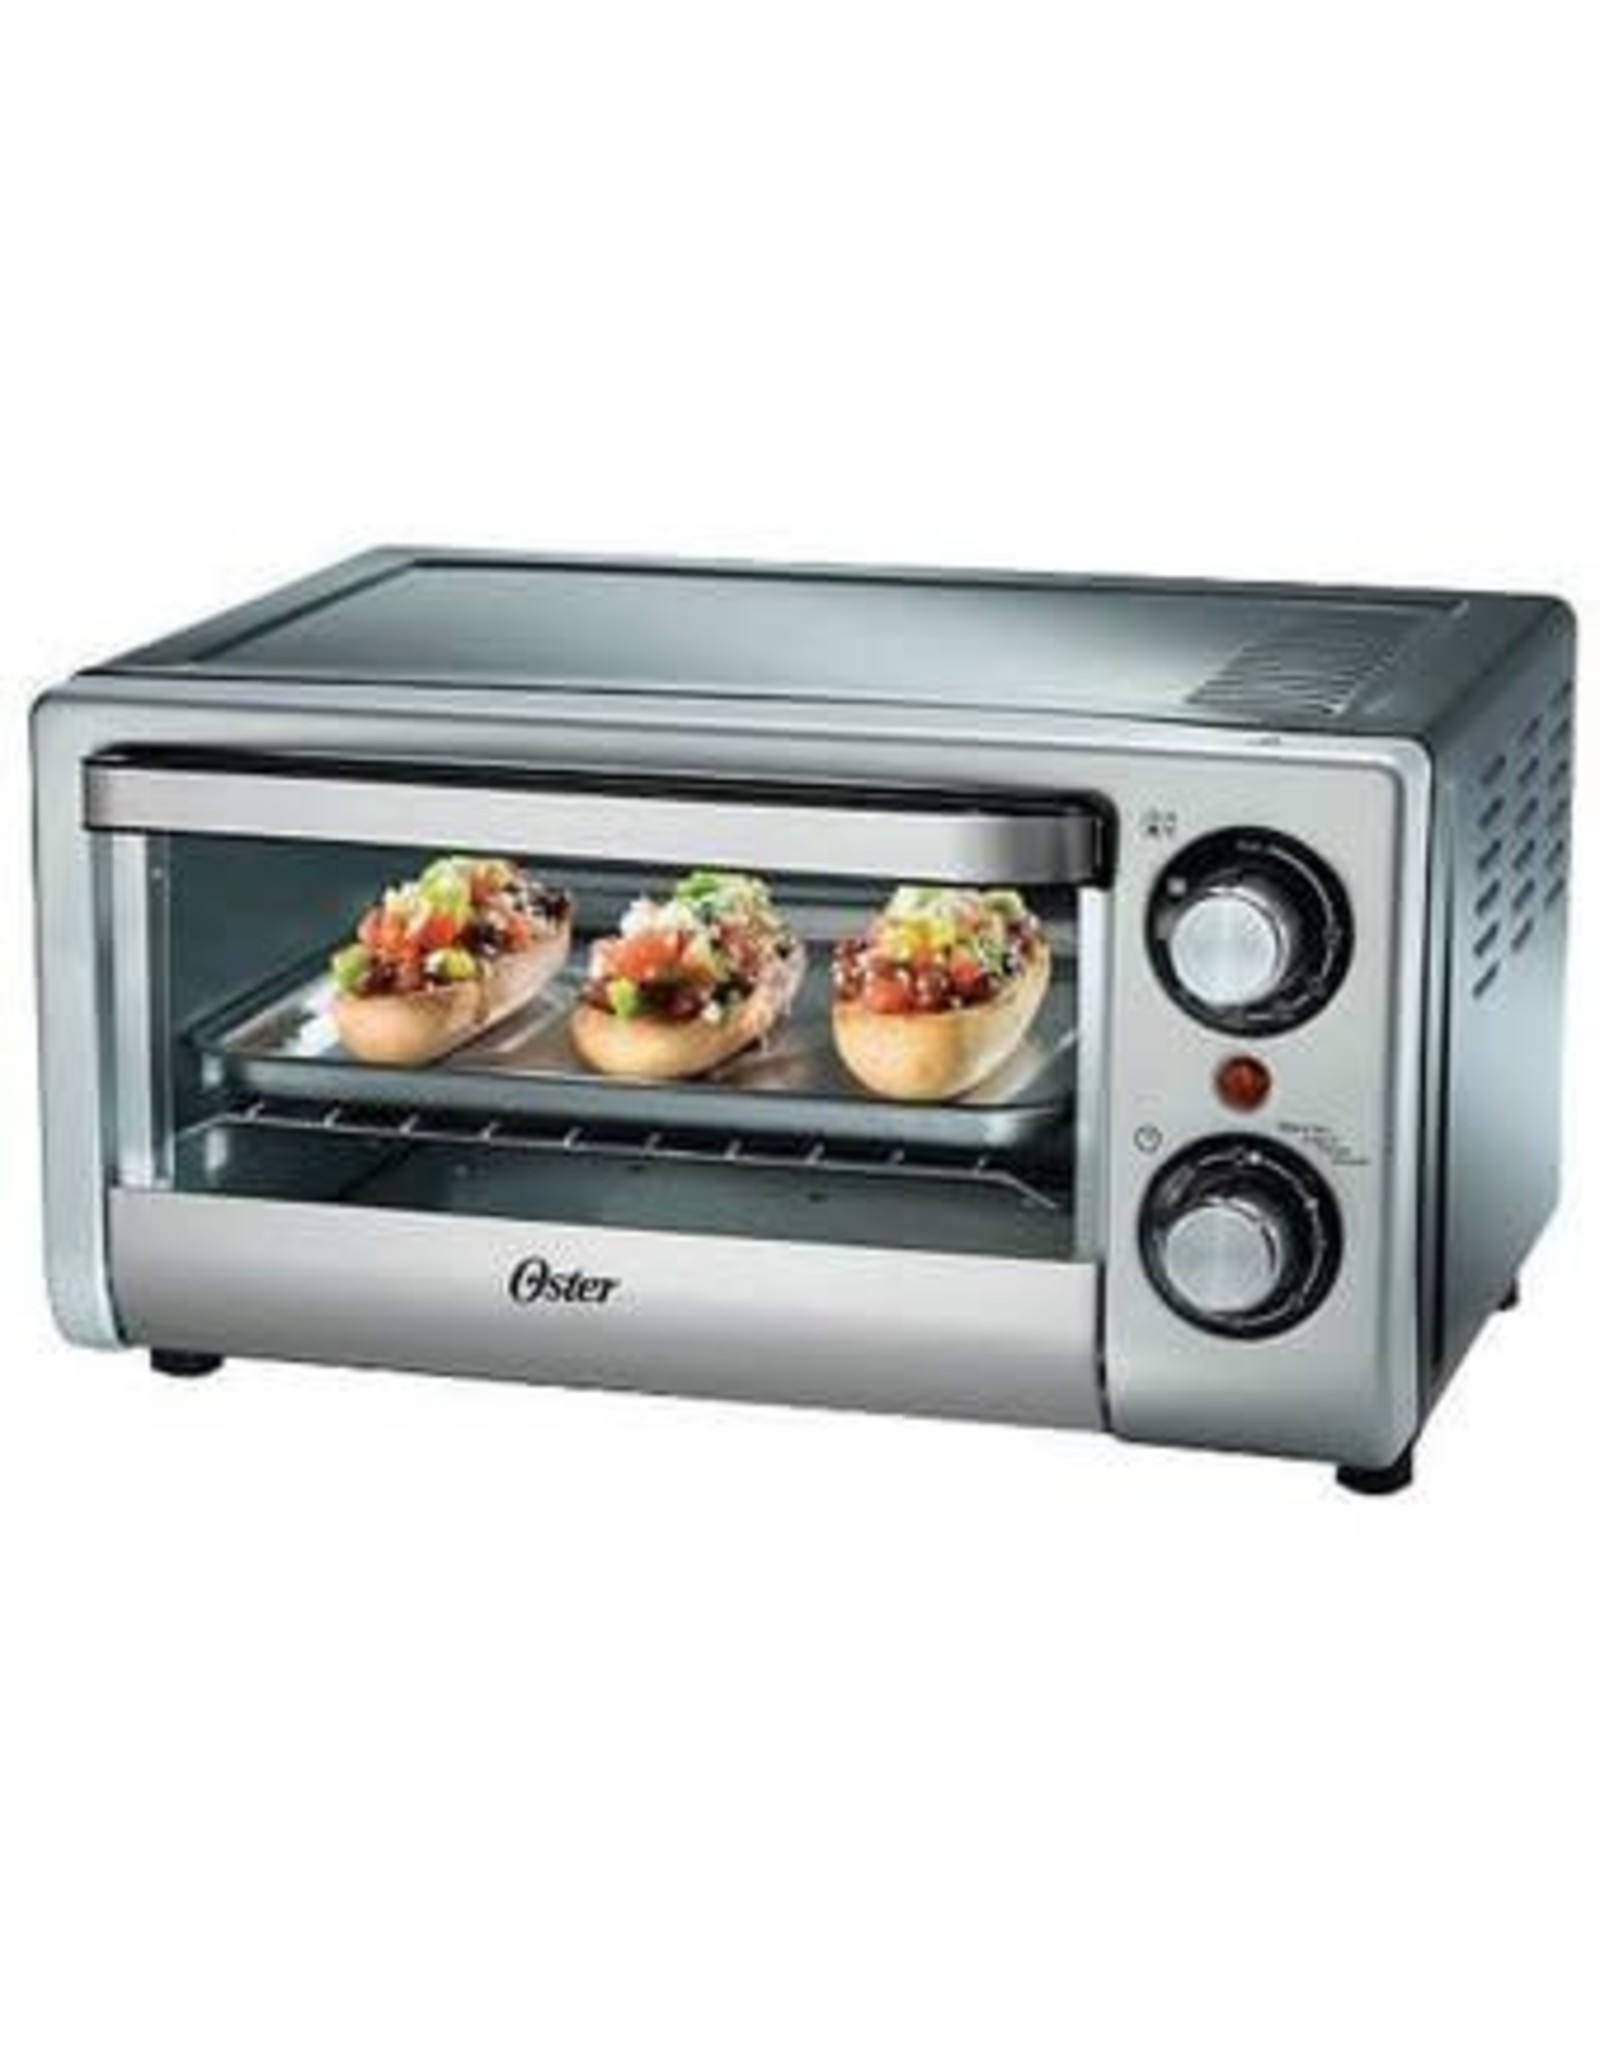 Oster Toaster Oven Silver TSSTTV10LTB-01